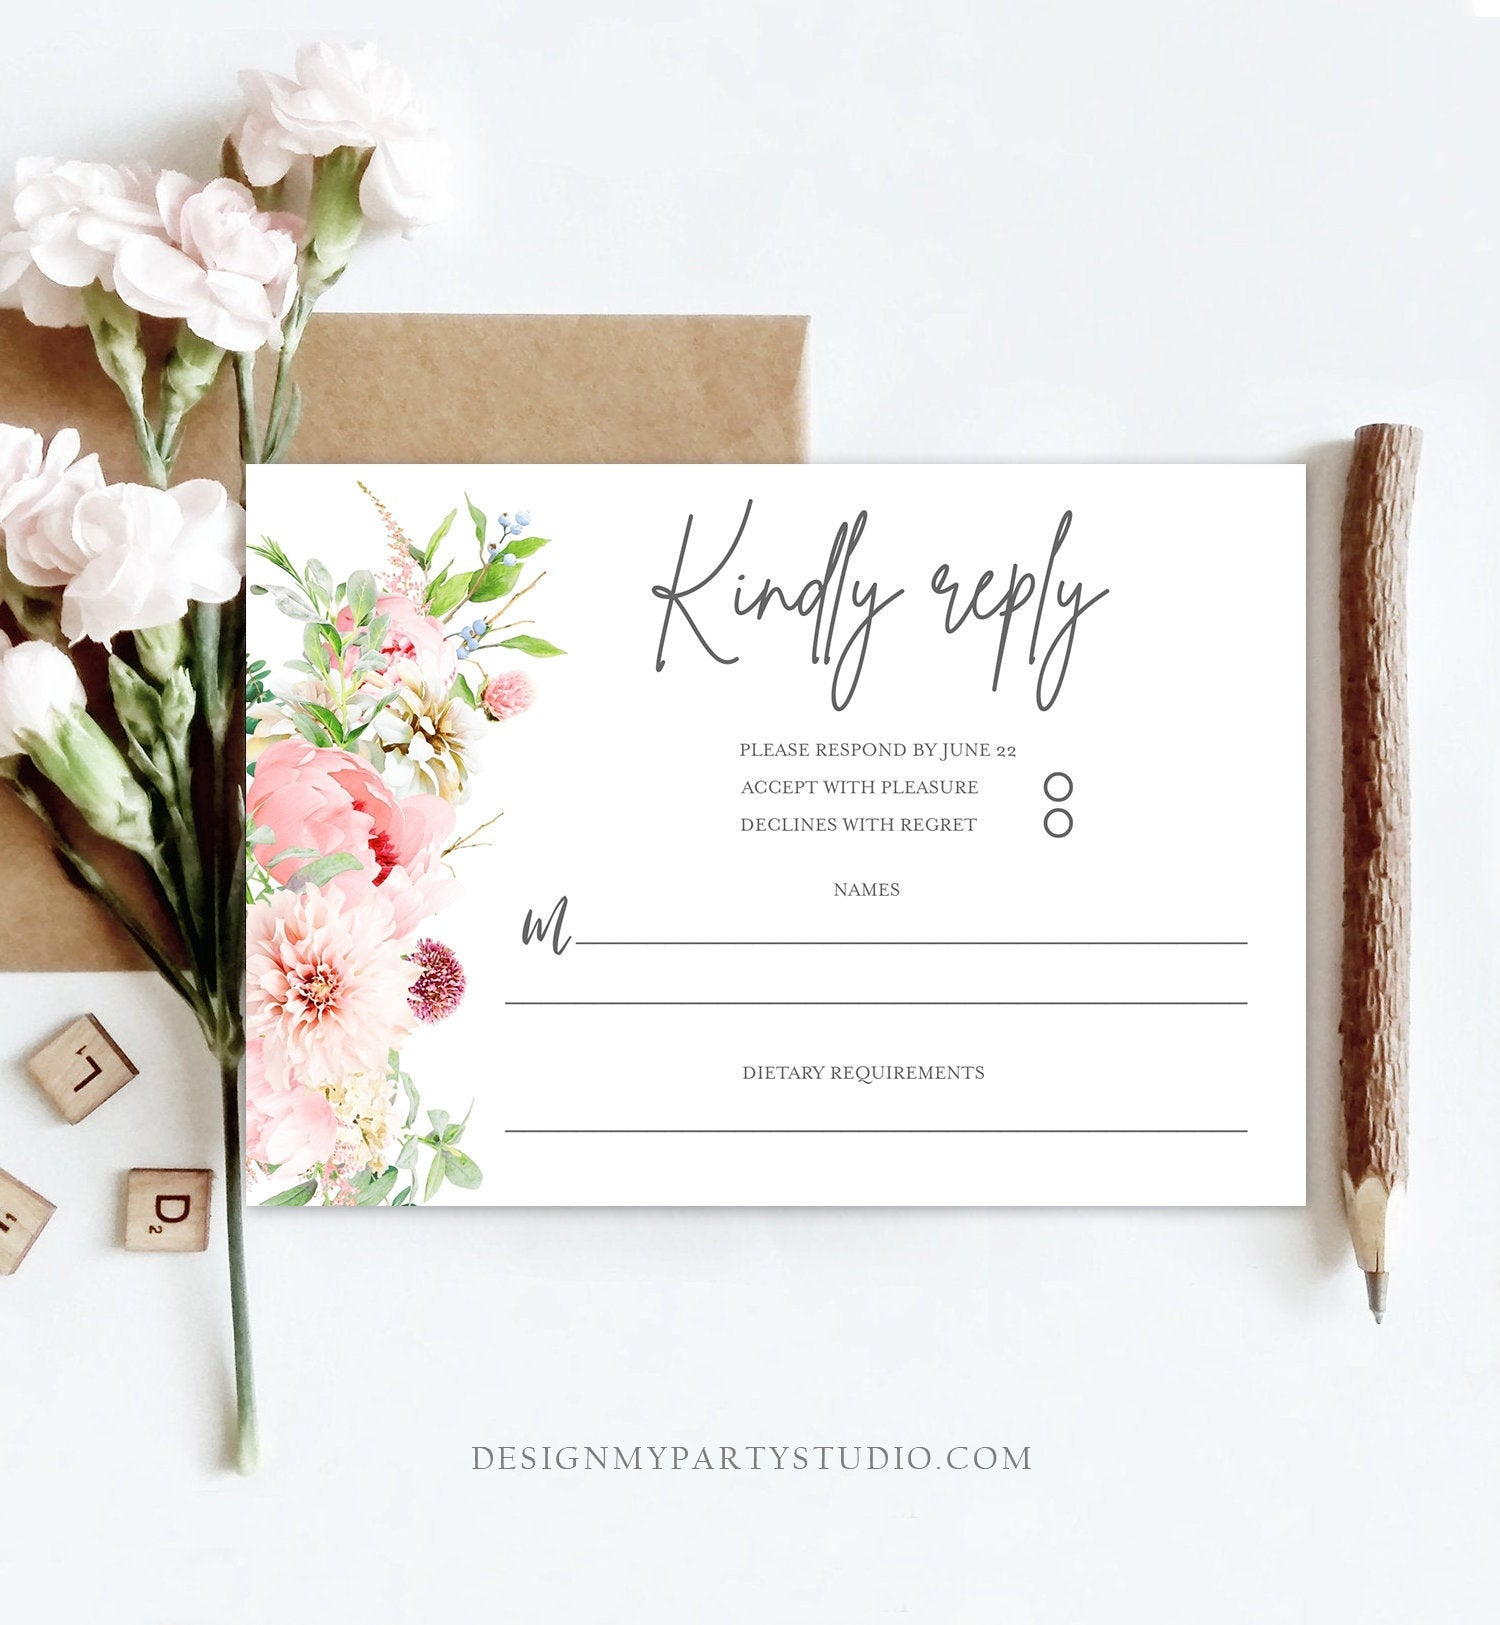 Editable Botanical Flowers RSVP Card Wedding Pink Floral Blush Watercolor Greenery Kindly Reply Peony Flowers Corjl Template Printable 0167